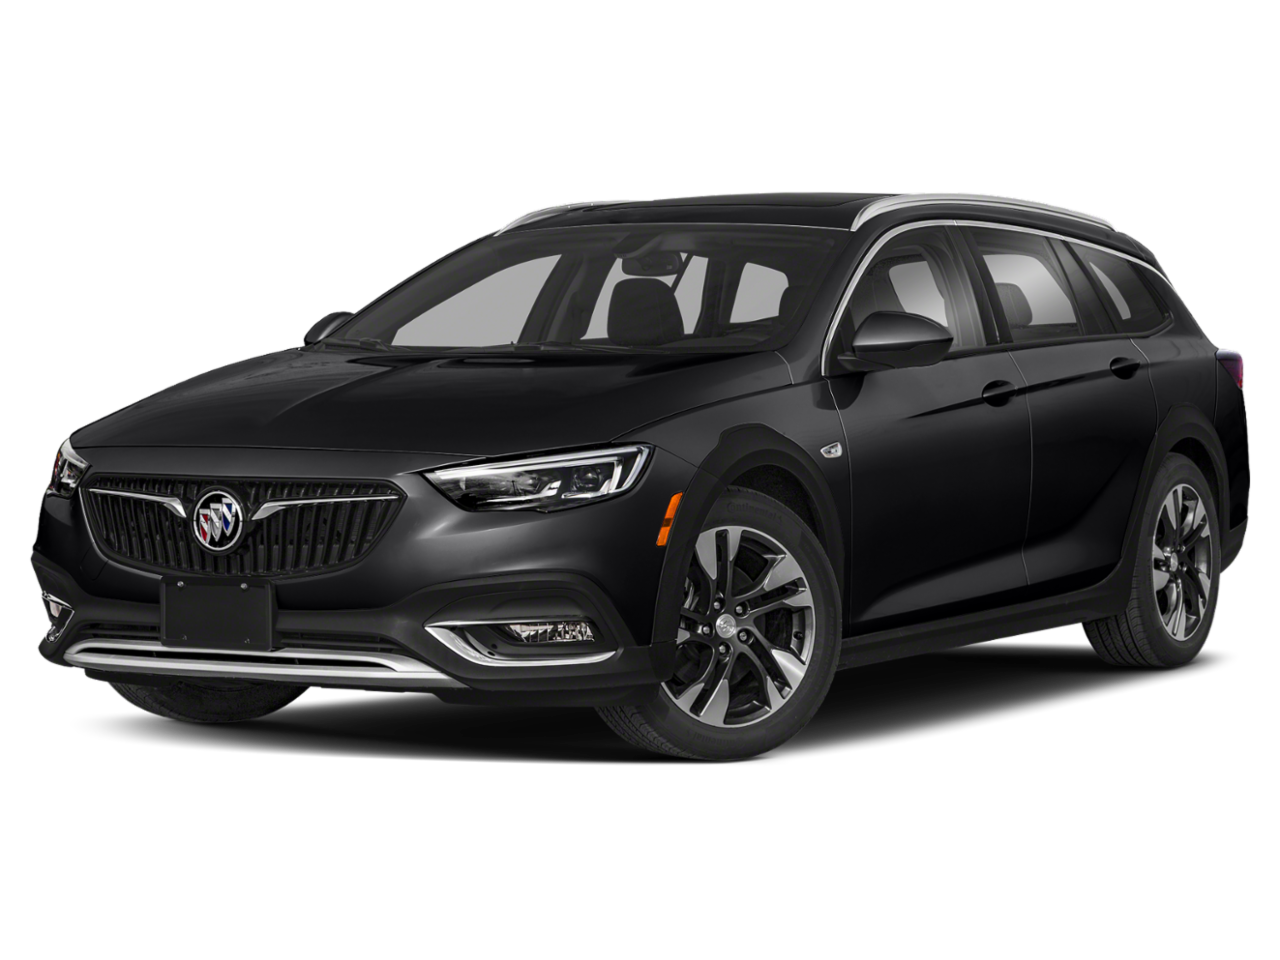 Buick 2020 Regal TourX Essence